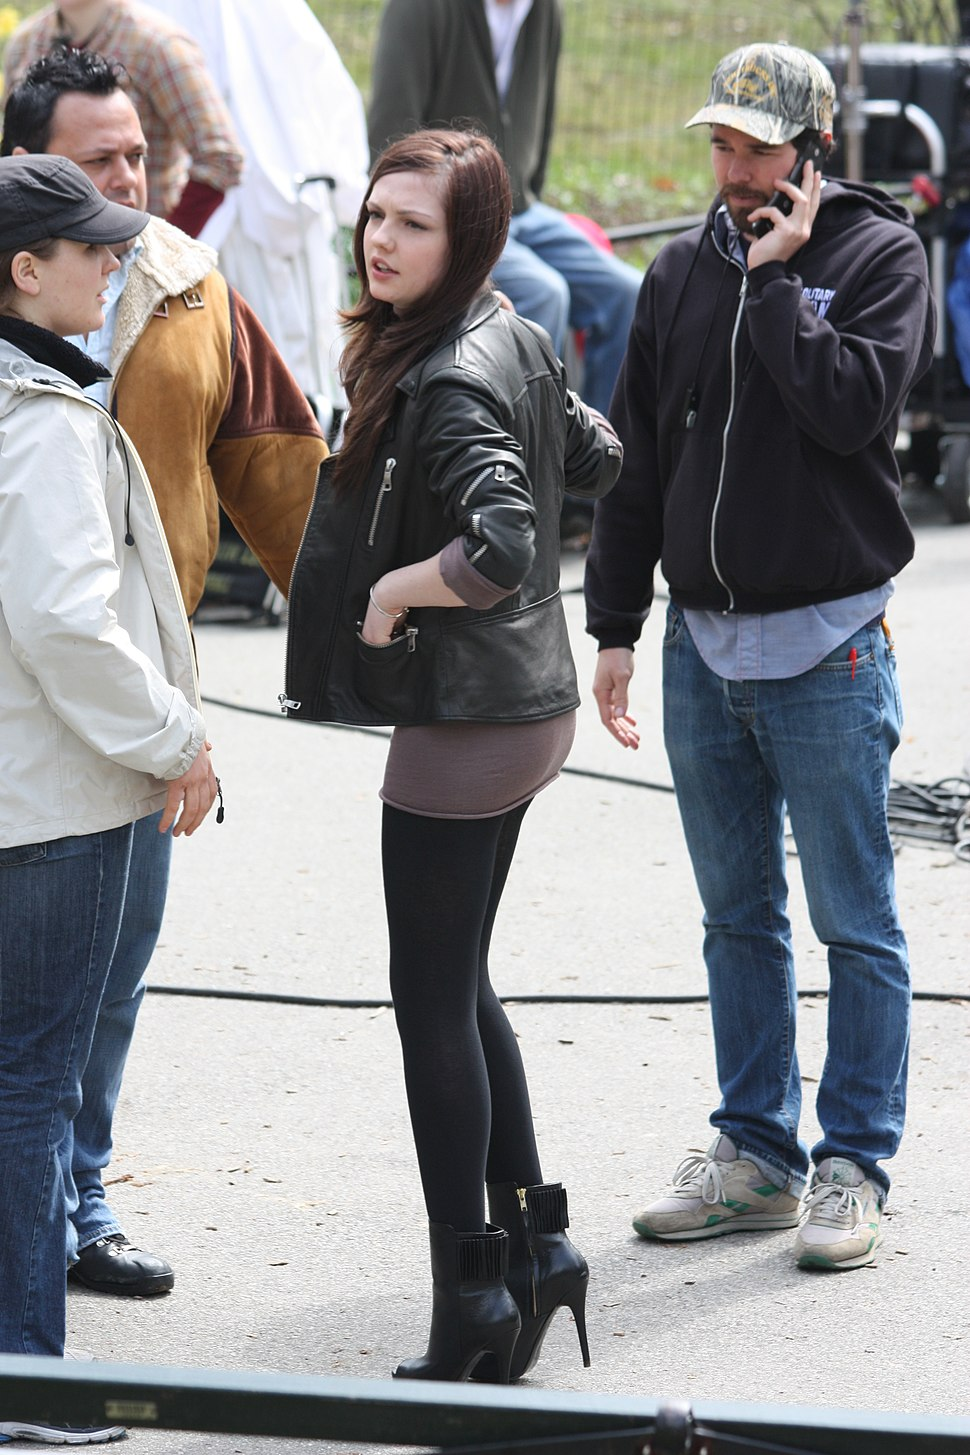 Emily Meade filming Twelve in Central Park, 21-04-09